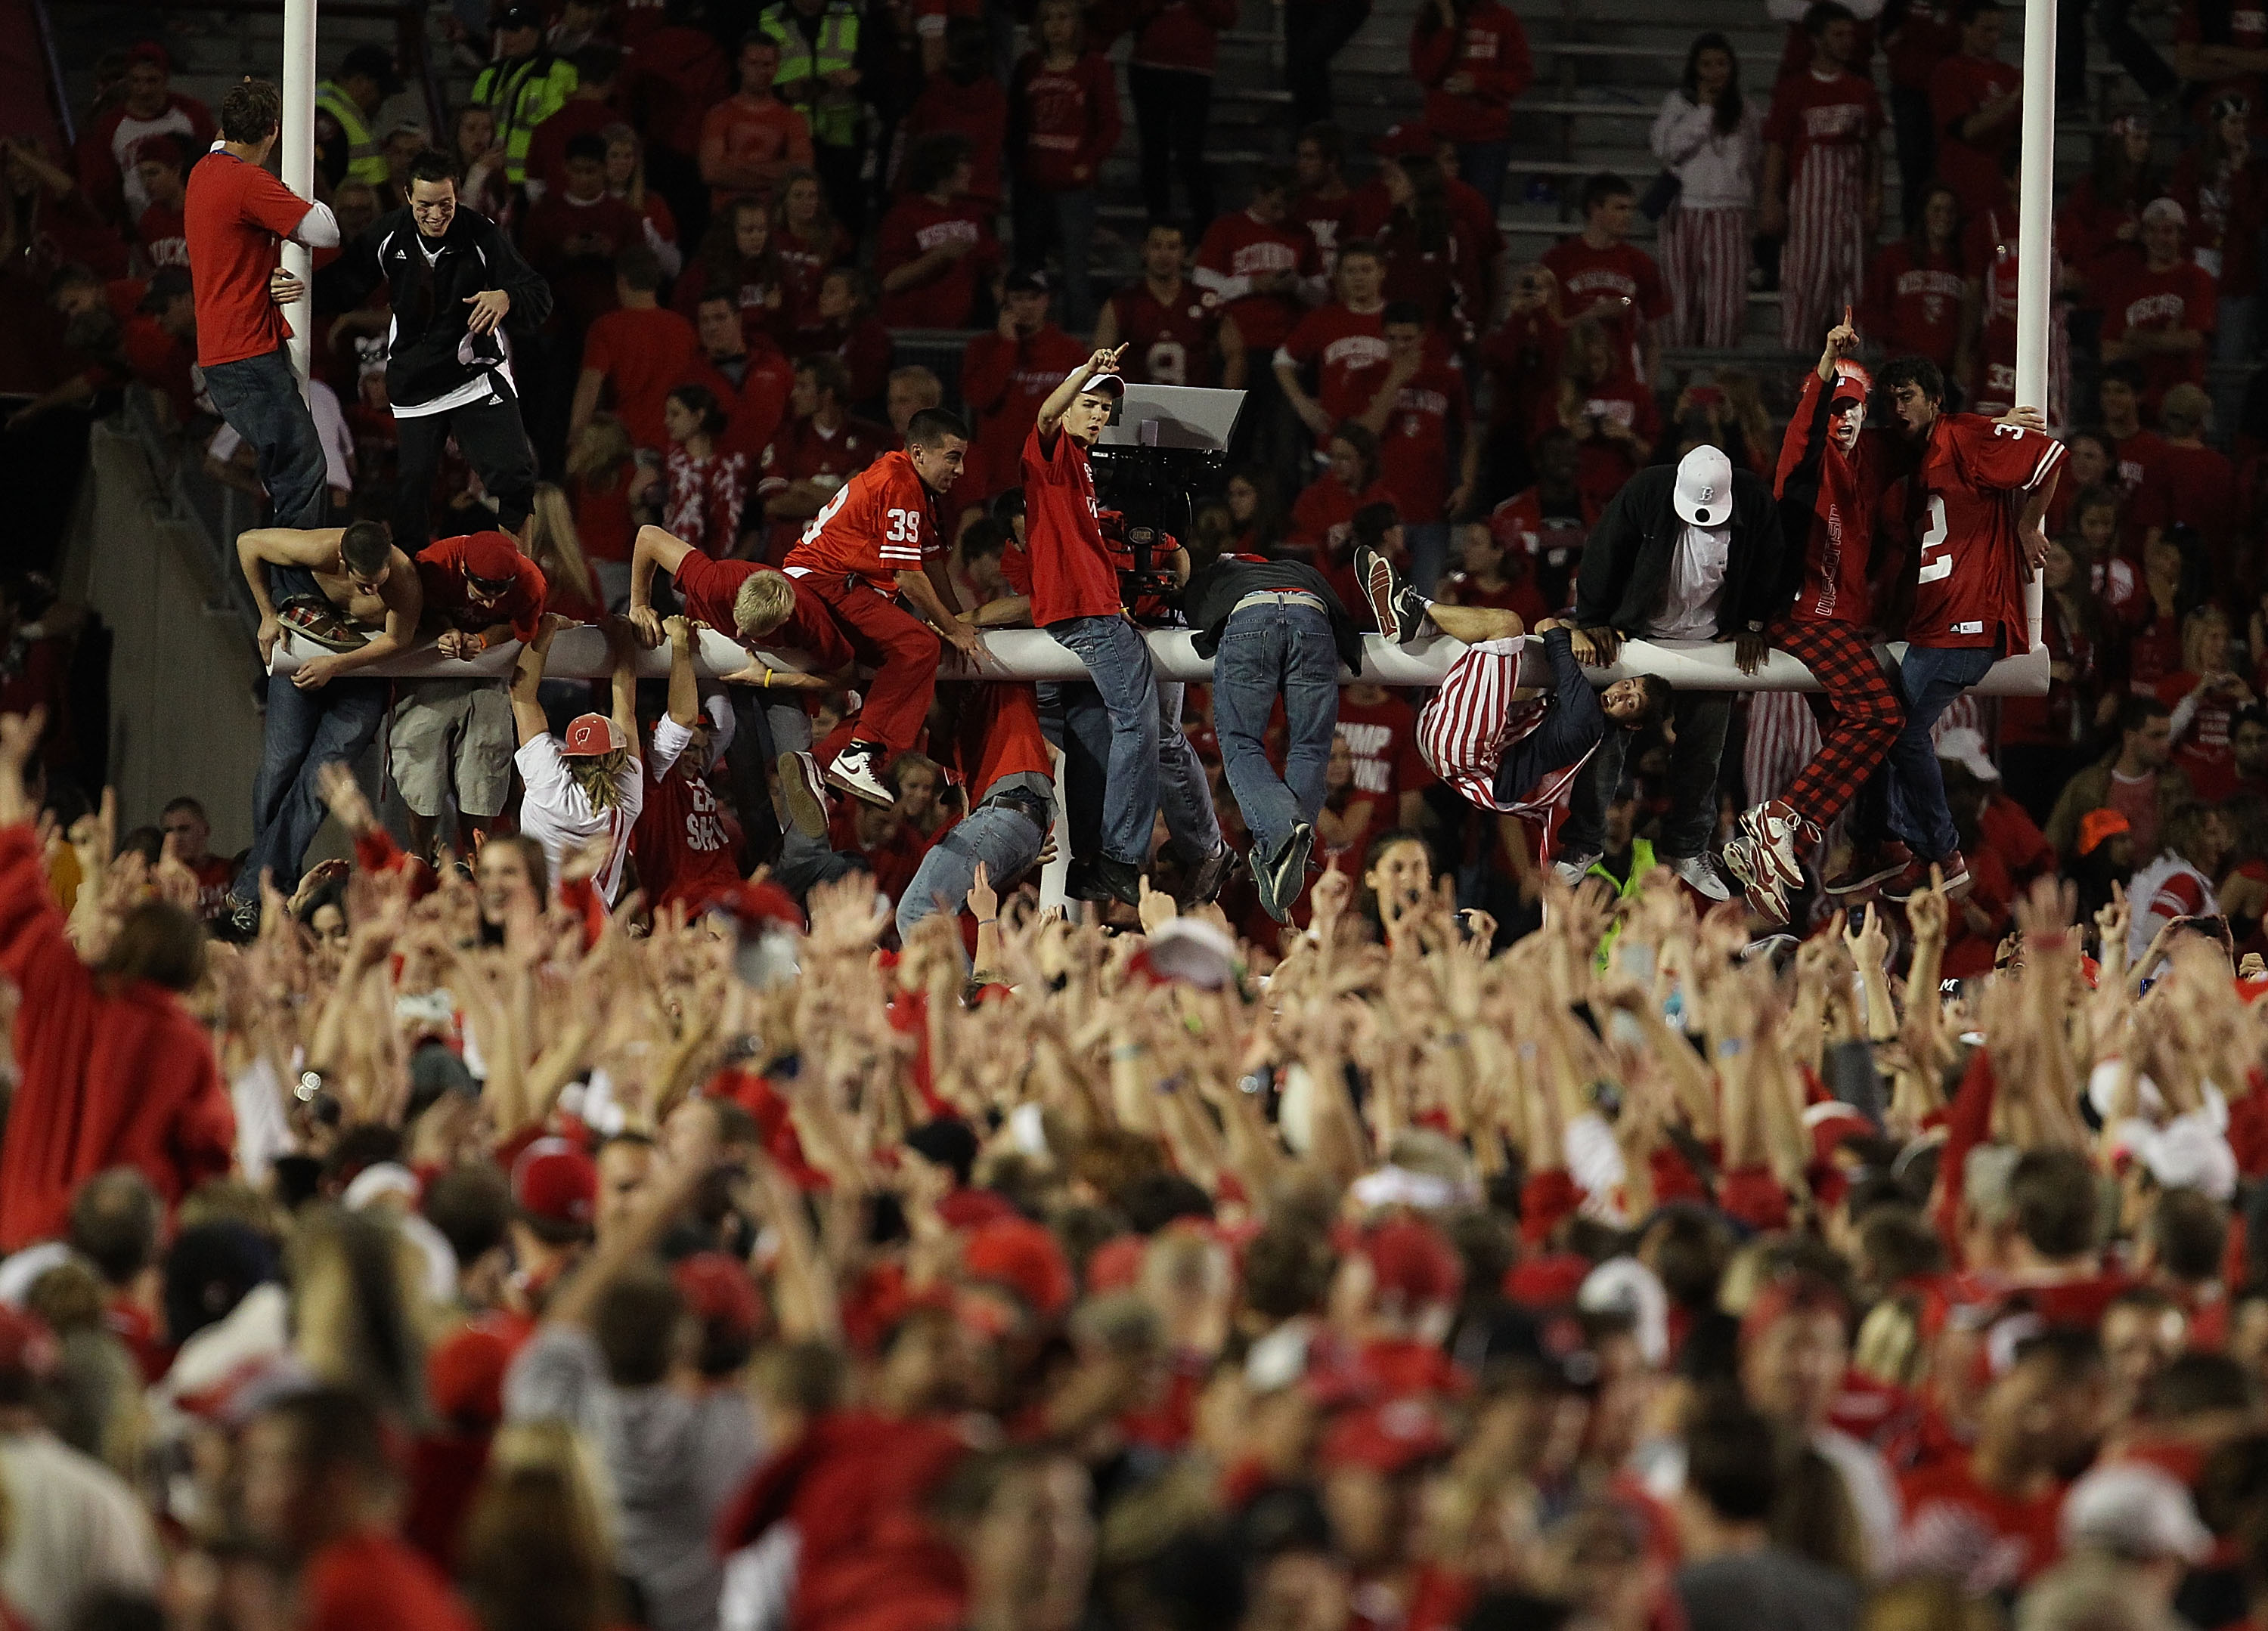 MADISON, WI - OCTOBER 16: Fans of the Wisconsin Badgers storm the field and climb the goal post after a win over the Ohio State Buckeyes at Camp Randall Stadium on October 16, 2010 in Madison, Wisconsin. Wisconsin defeated Ohio State 31-18. (Photo by Jona